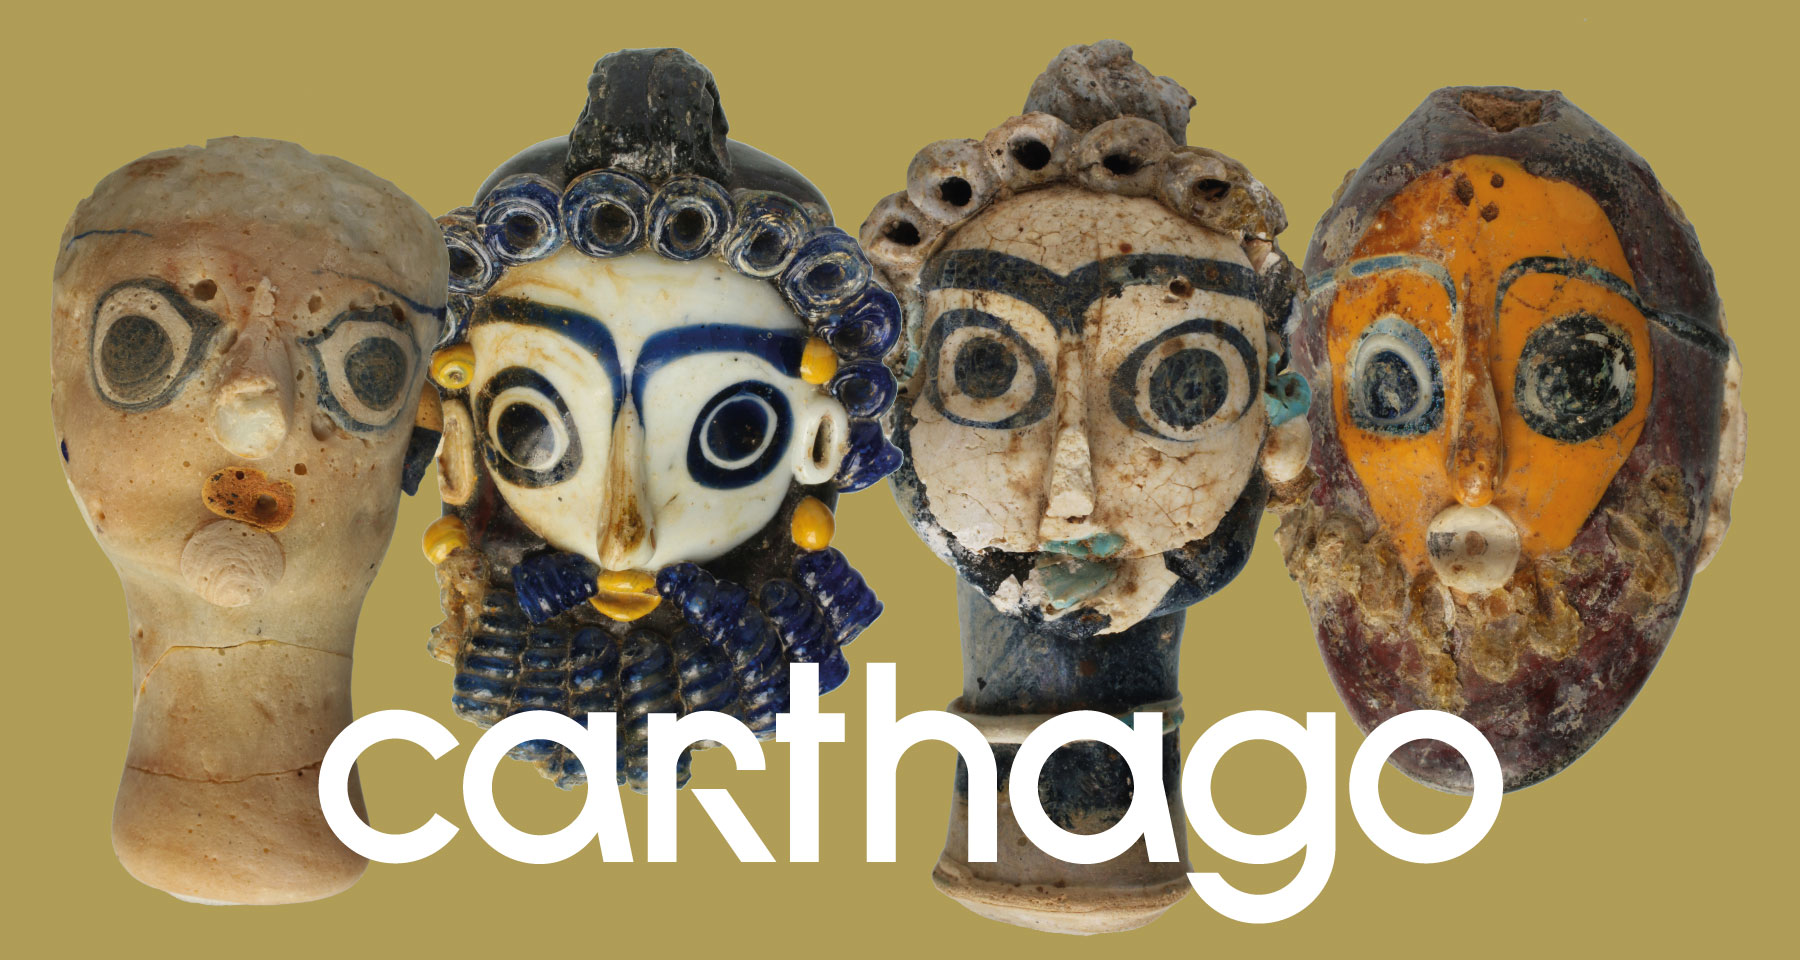 Carthago. The Immortal Myth. 27 September to 29 March 2020 in the spaces of the Colosseum, Temple of Romulus and Imperial Ramp